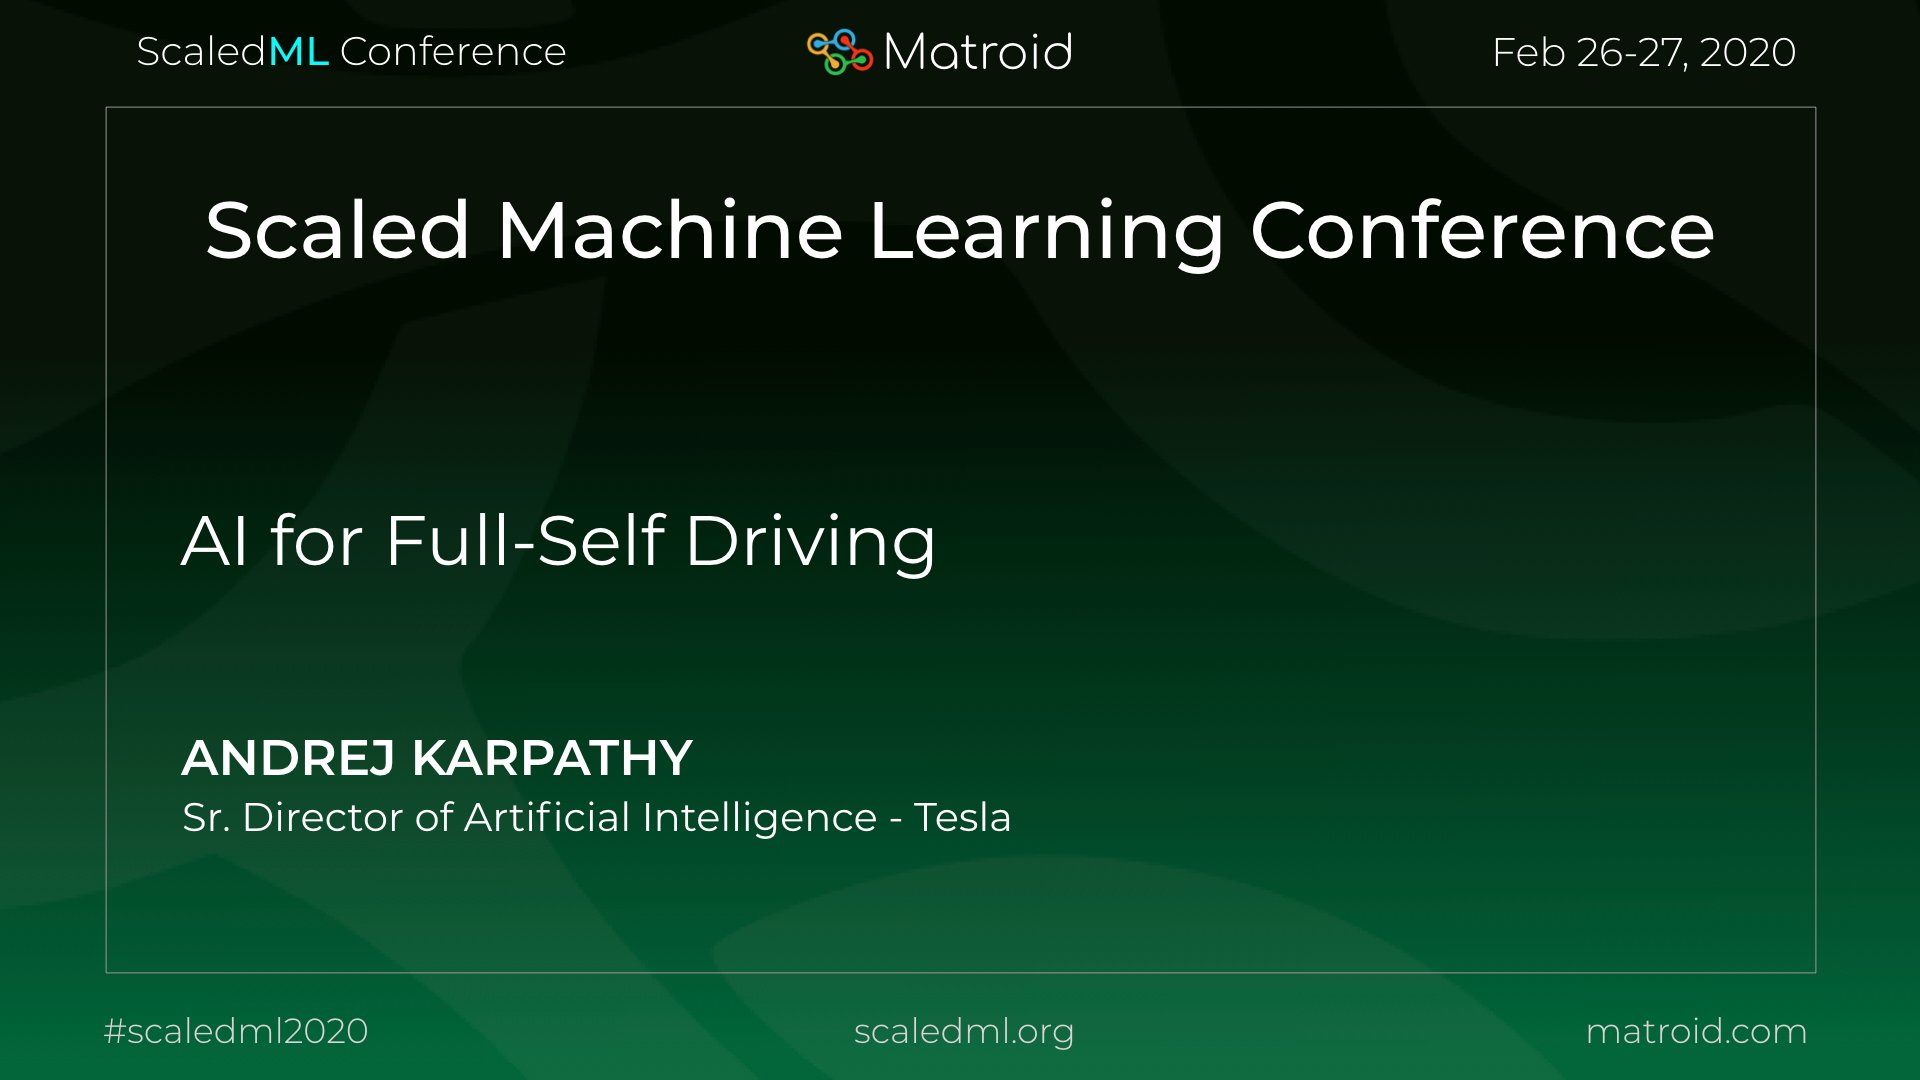 Andrej Karpathy Tesla Matroid ScaledML Conference TPU CPU GPU Computer Vision AI Artificial Intelligence Machine Learning